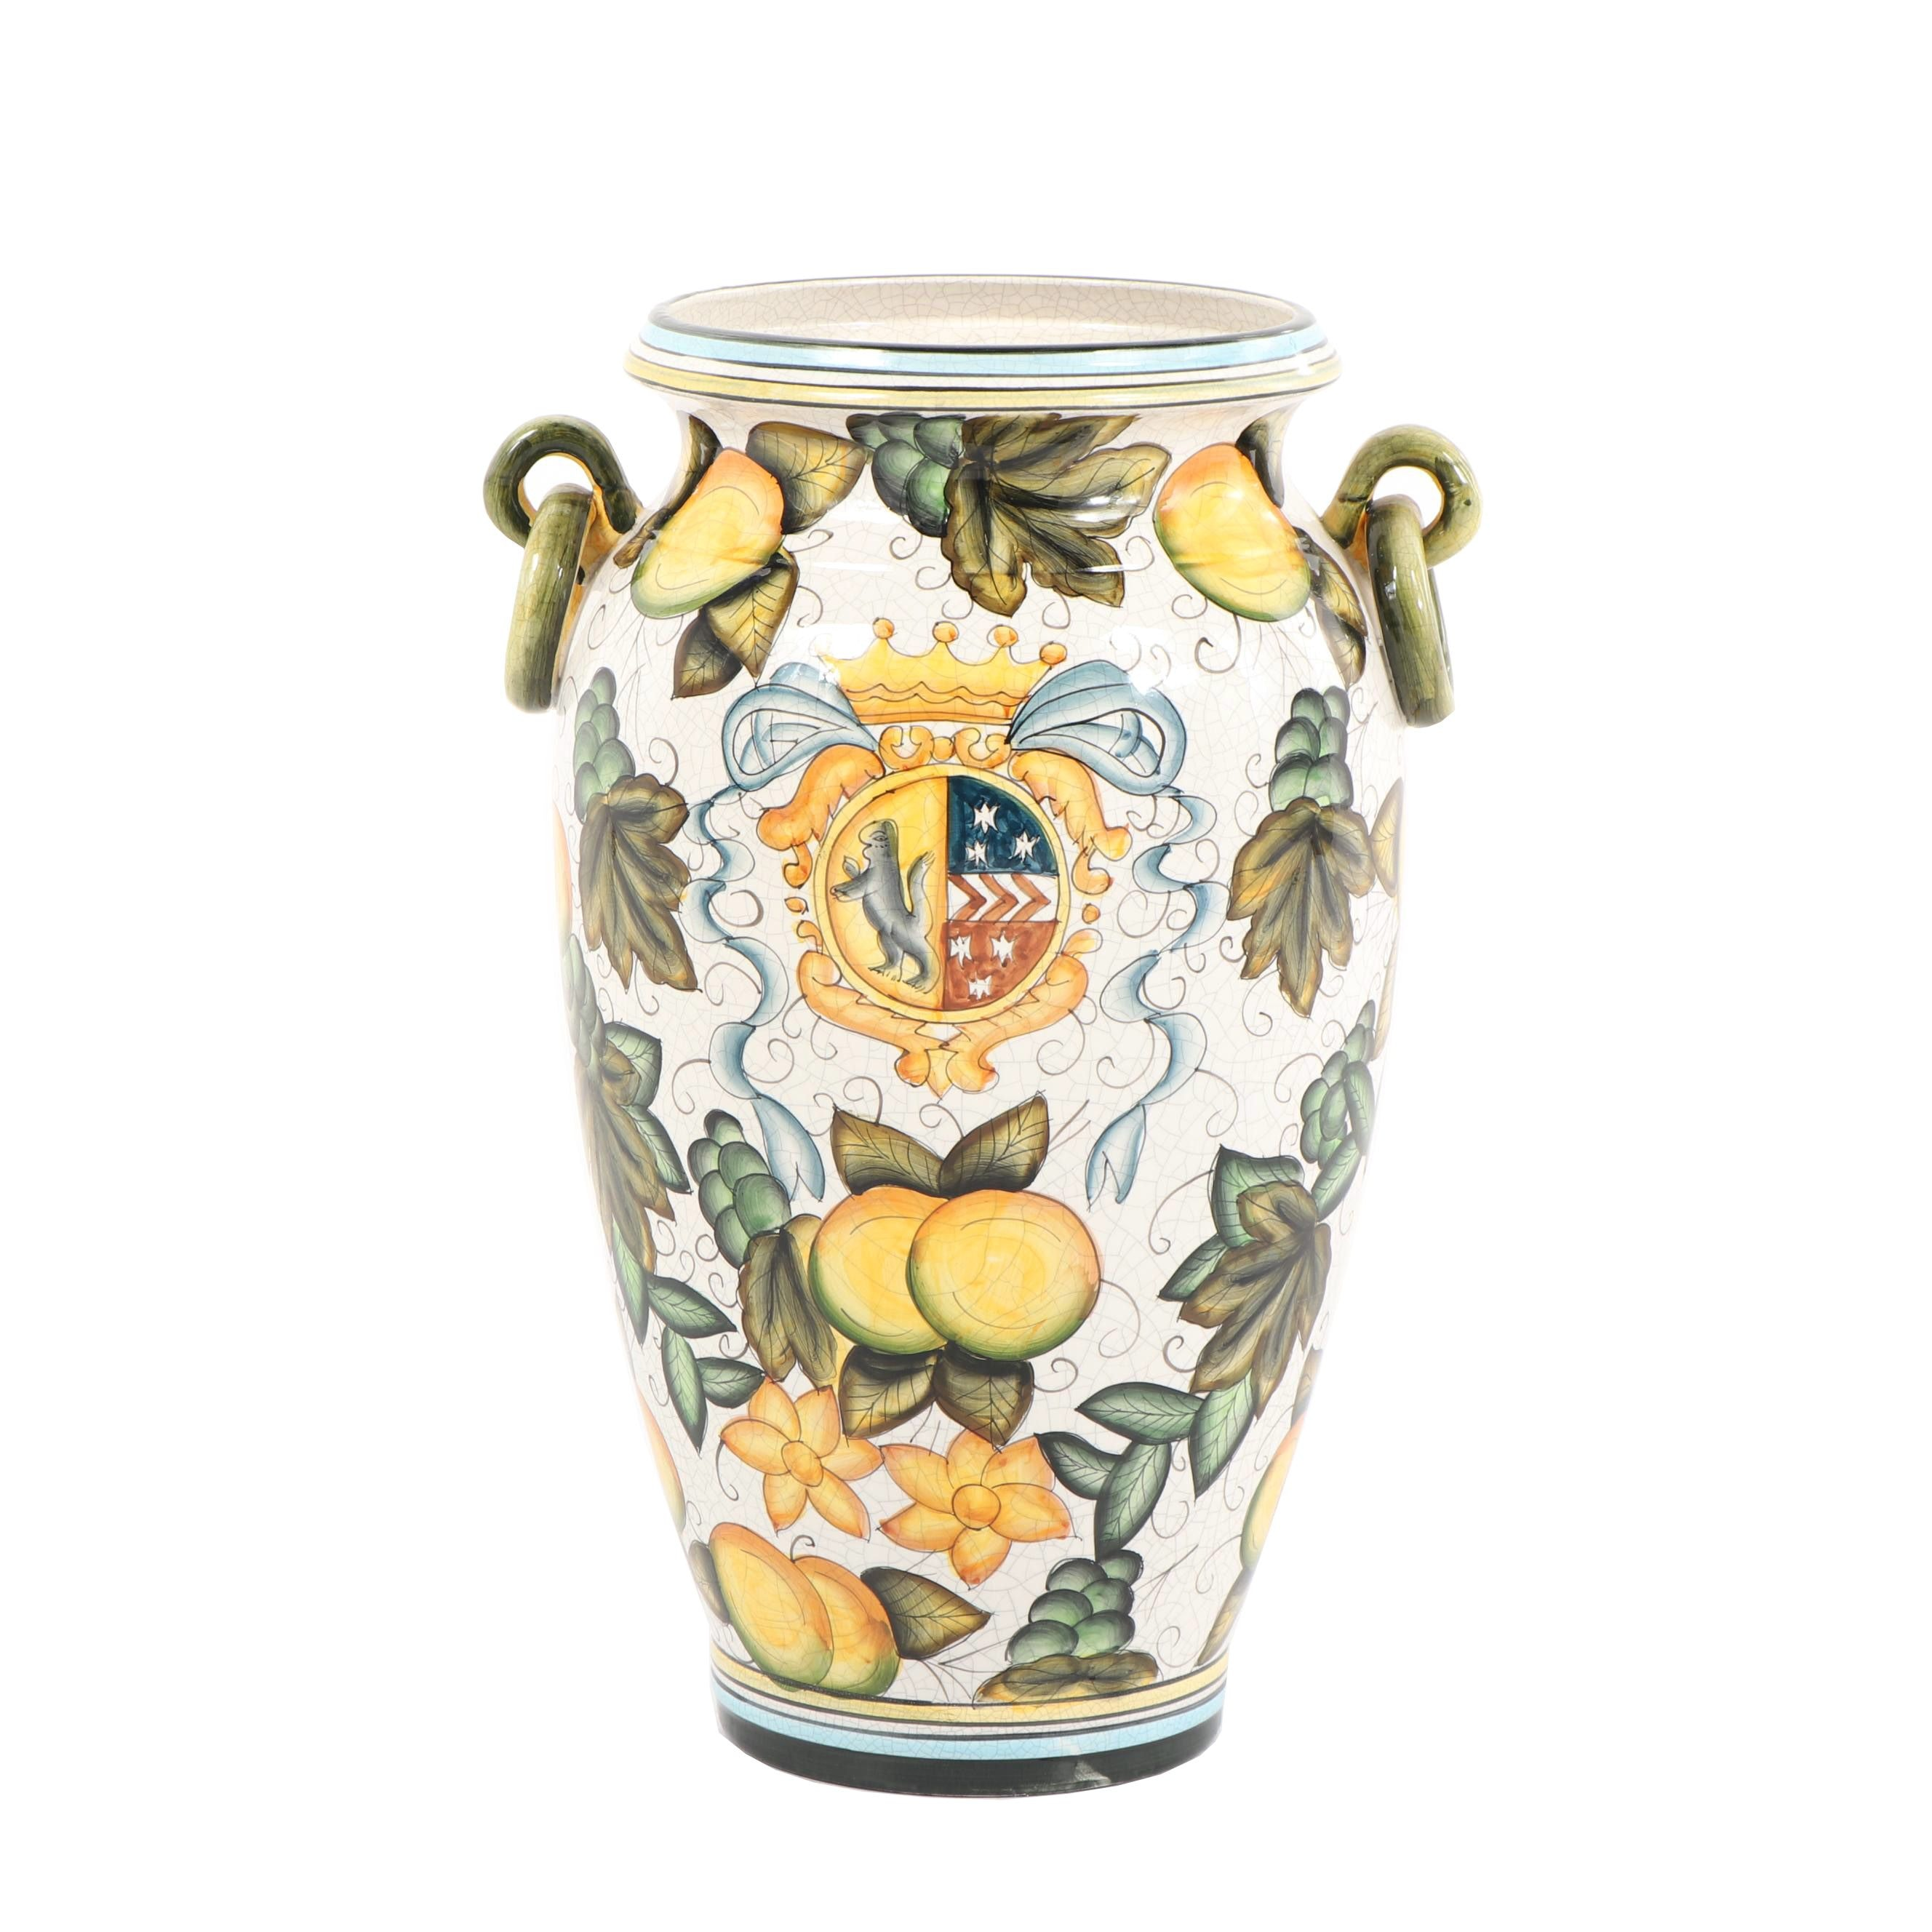 Contemporary Majolica Style Pottery Vase